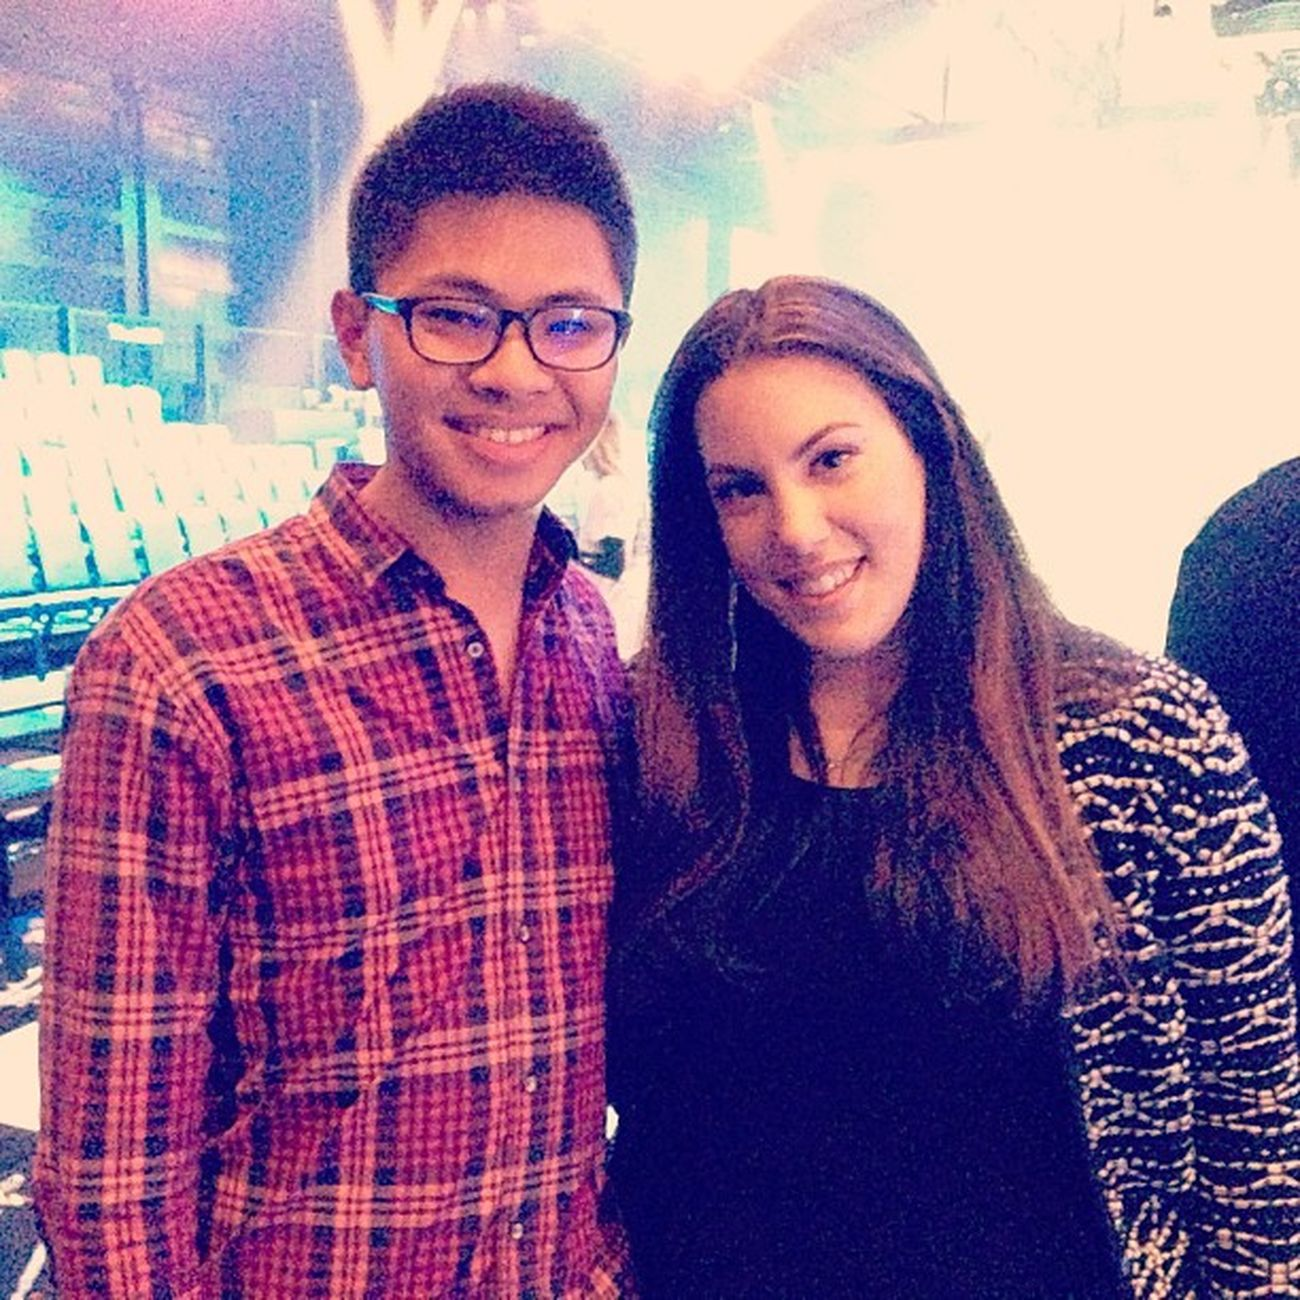 marykatrantzou and I. She's truly amazing!